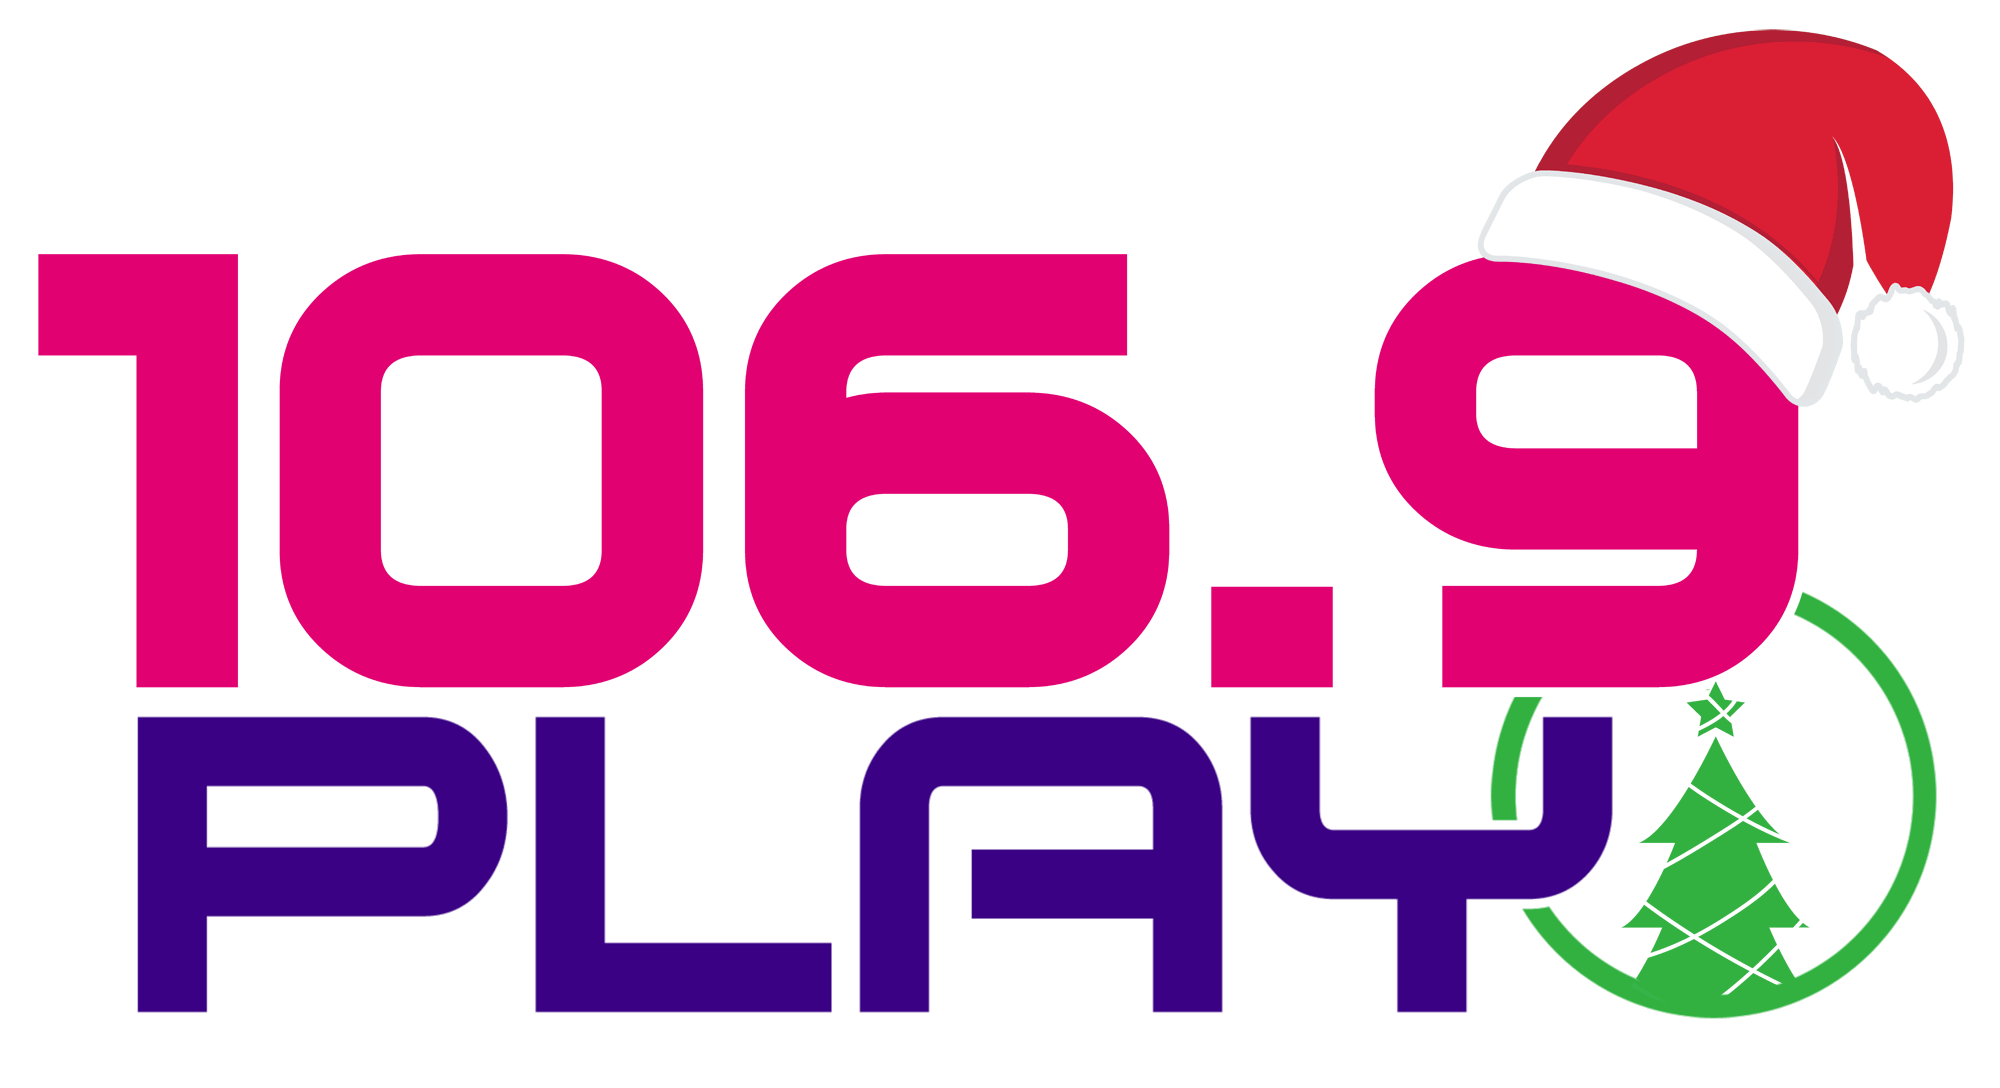 WVEZ | 106.9 PLAY | The Best Mix of Music